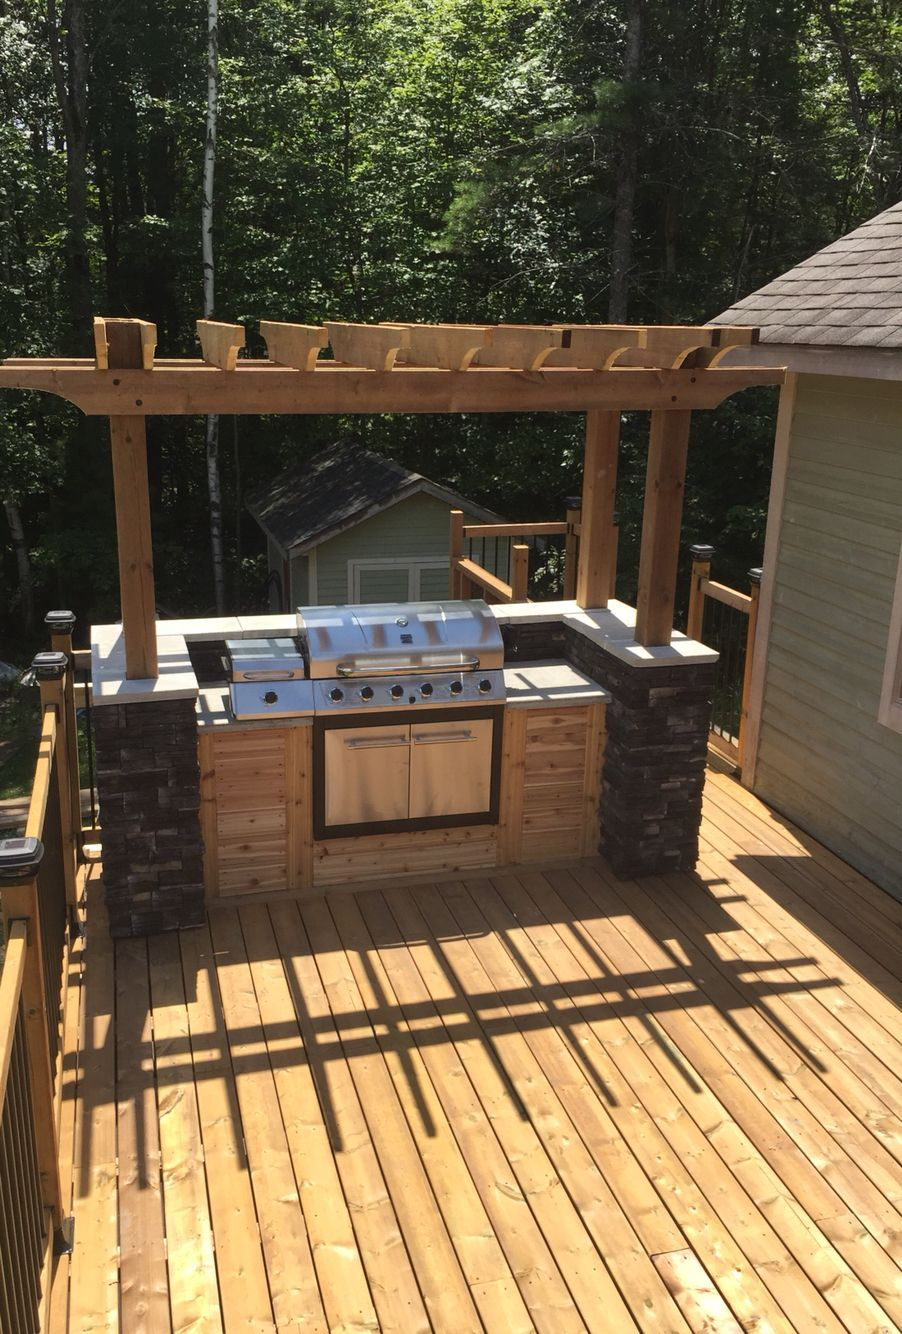 10 Awesome Concepts Of How To Build Backyard Bbq Area Design Ideas